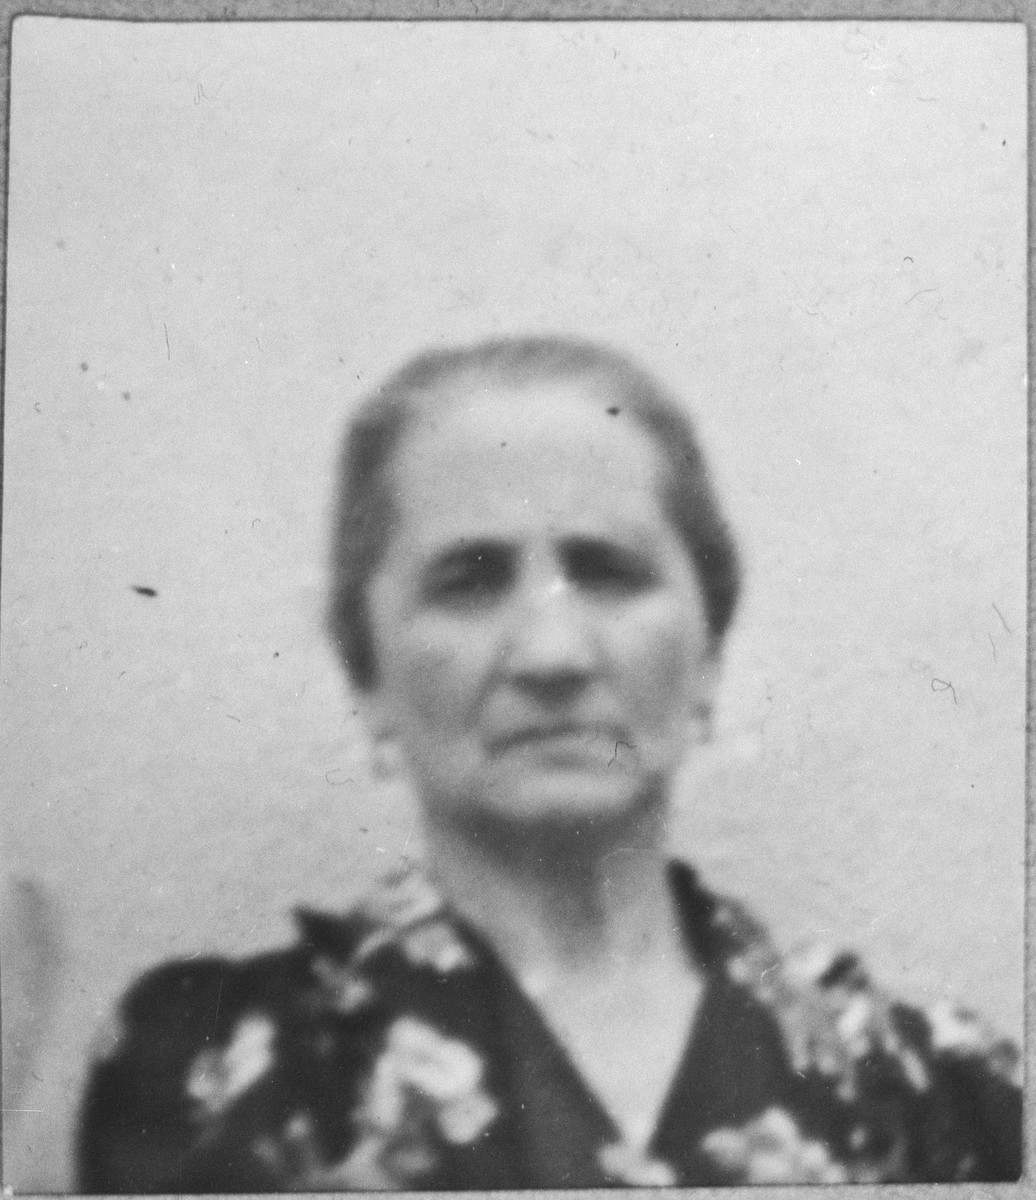 Portrait of Hana Ischach, wife of Schachia Ischach.  She lived at Zvornitska 11 in Bitola.